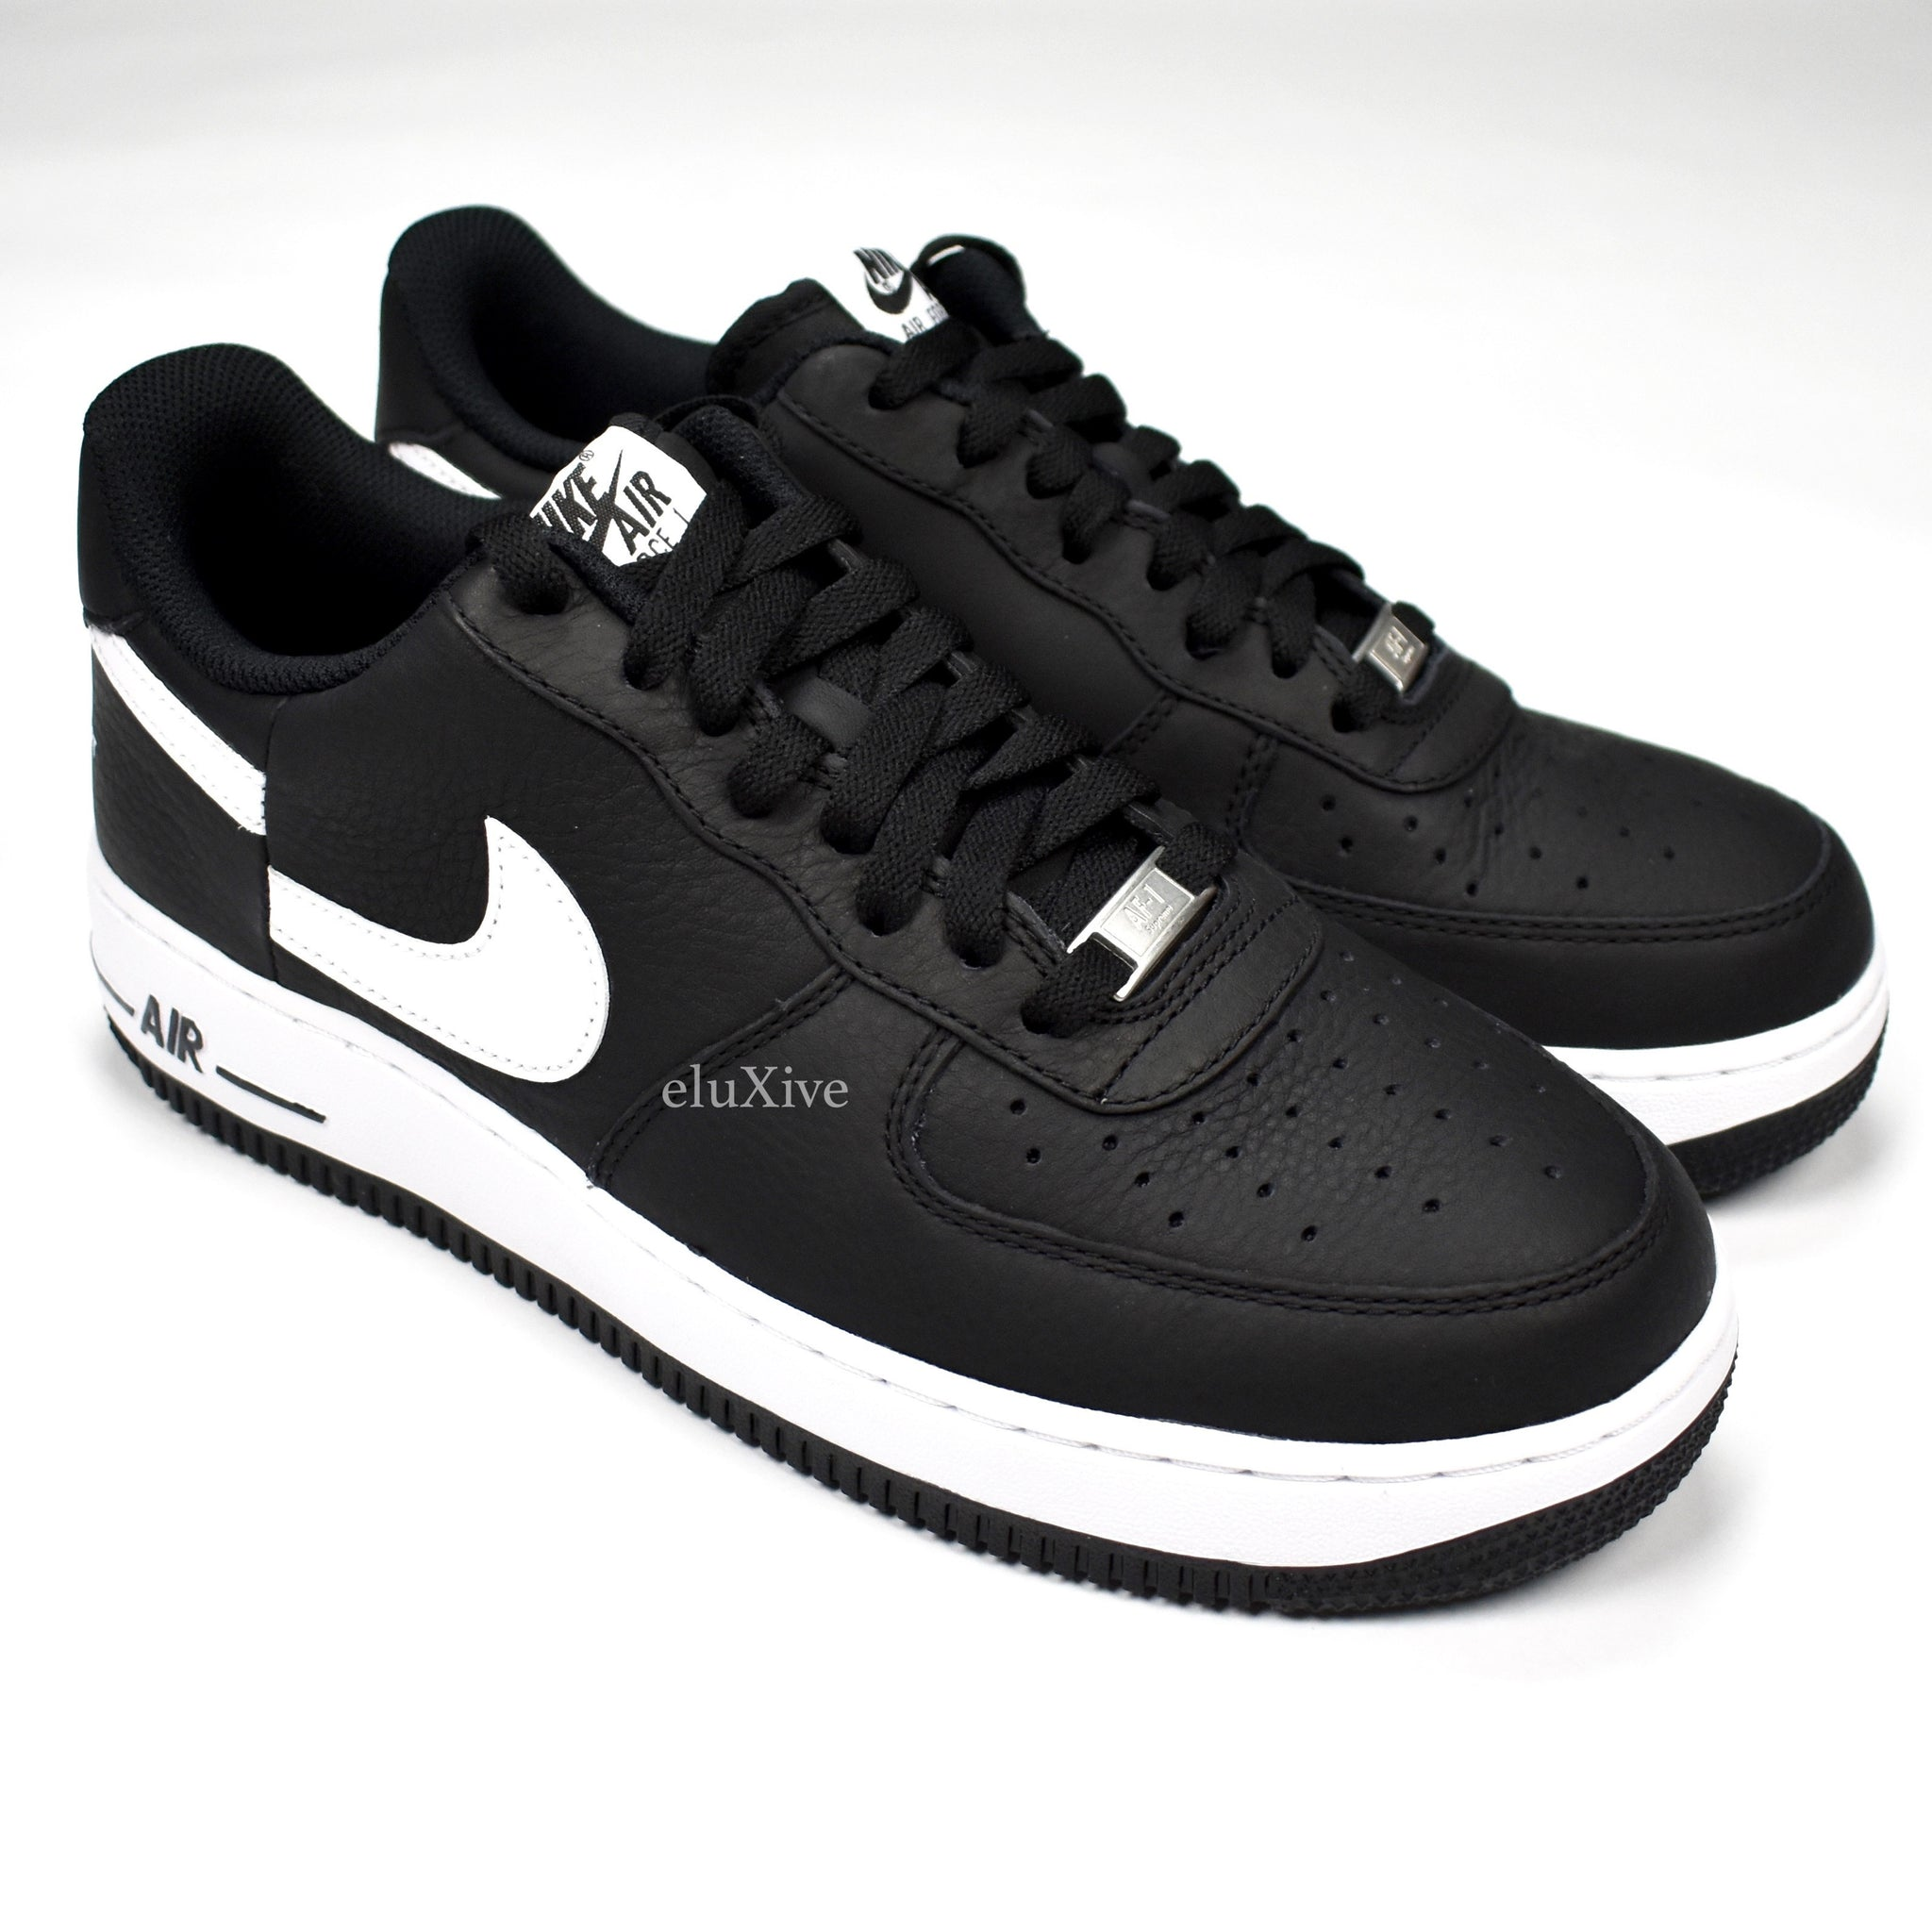 3f5342d9925b13 Supreme x Comme des Garcons x Nike - Air Force 1 CDG – eluXive